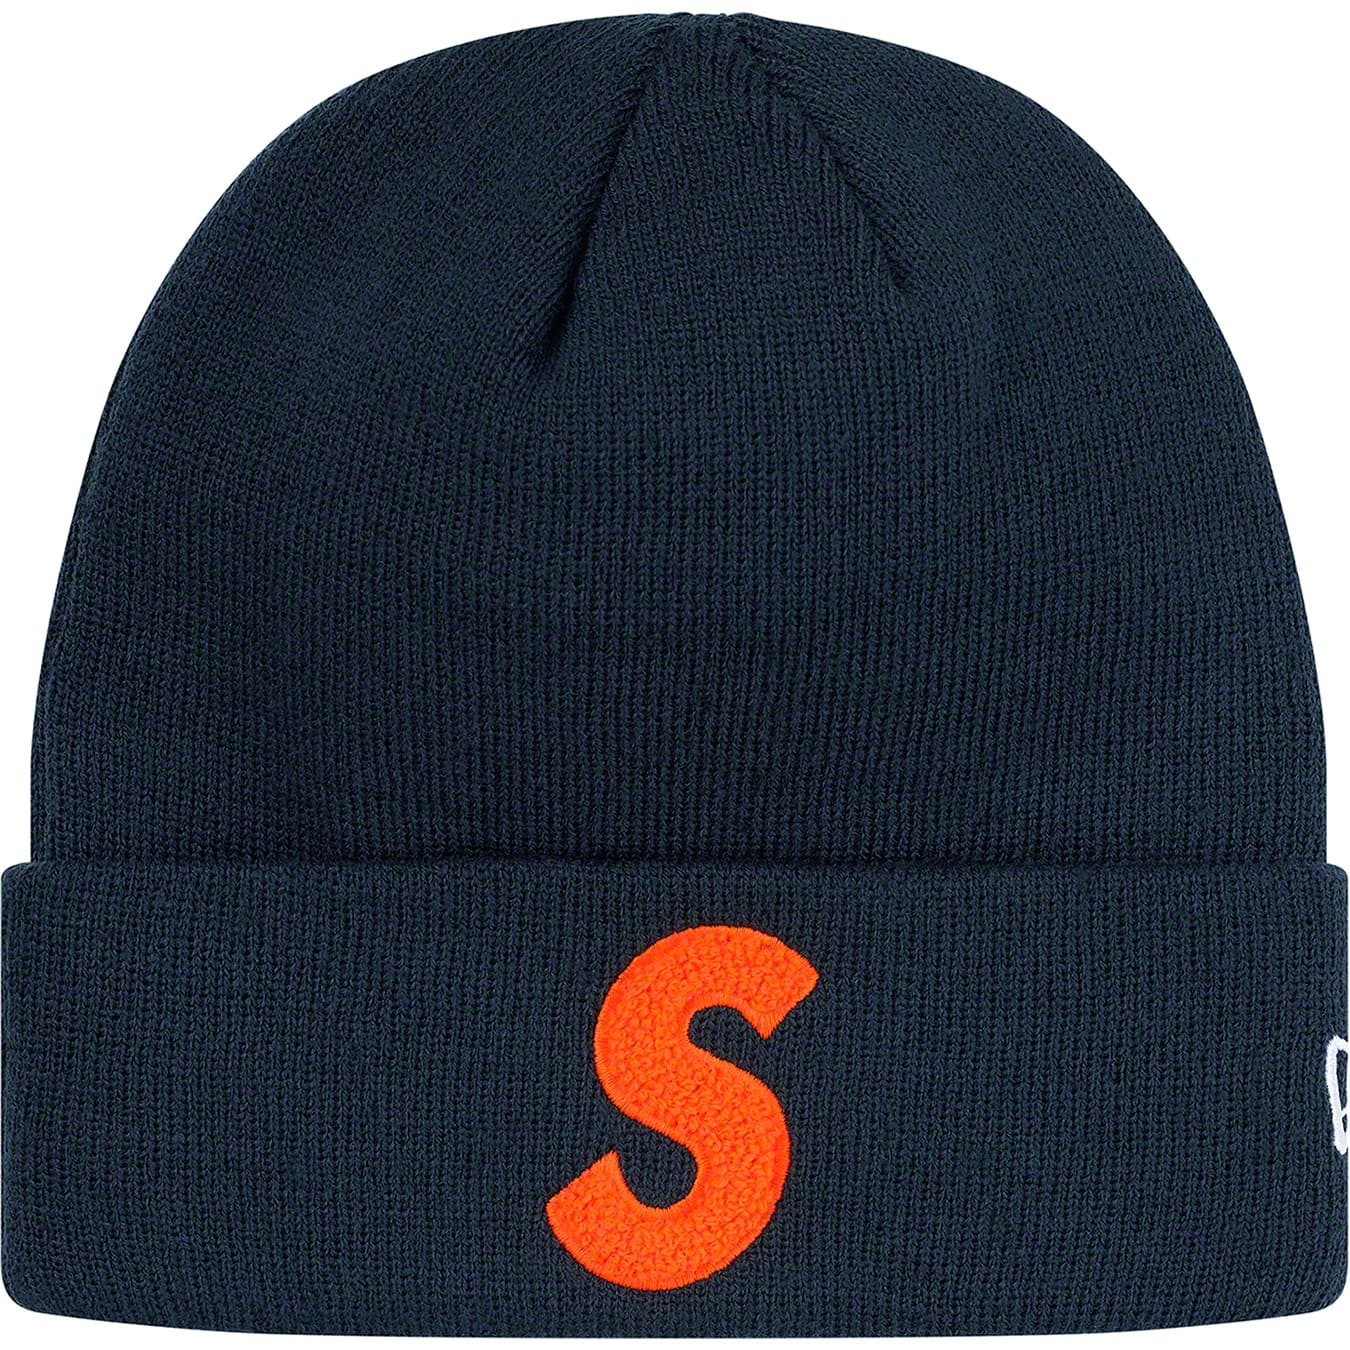 supreme-19aw-19fw-fall-winter-new-era-s-logo-beanie